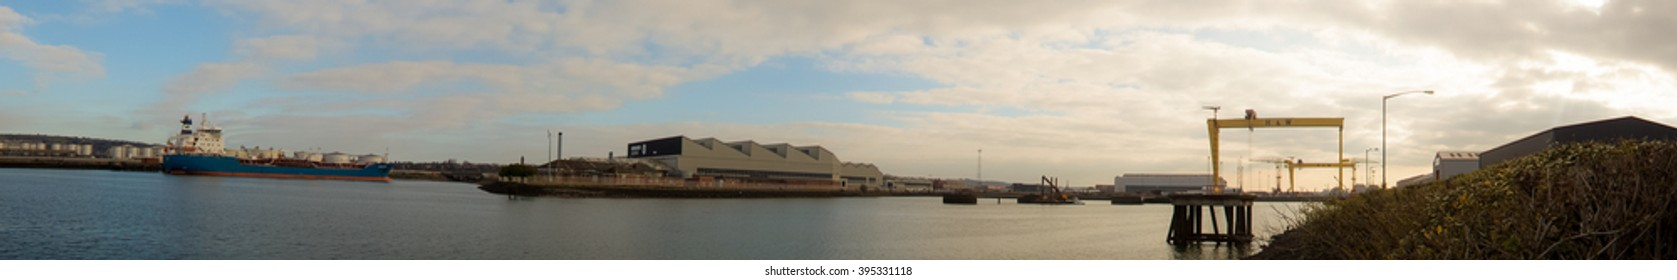 Belfast, County Antrim, Northern Ireland - March 20, 2016: Harland and Wolff Shipyard Cranes, Belfast Docklands Panoramic.